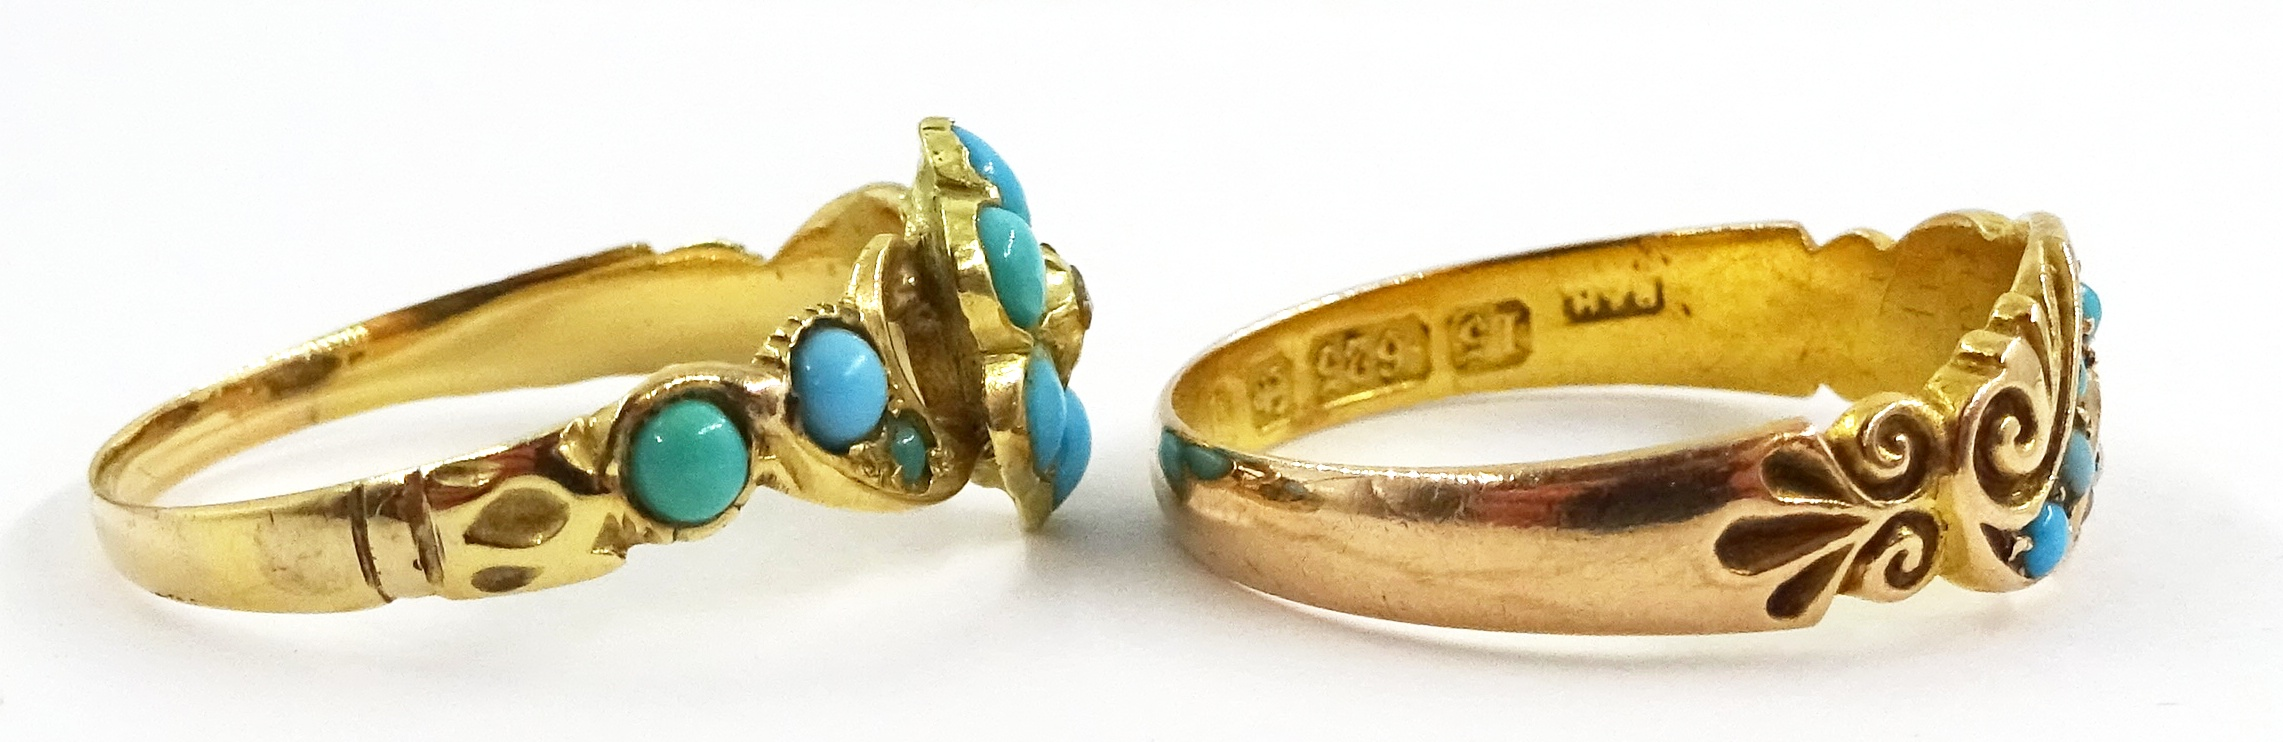 Victorian turquoise and diamond ring stamped 18ct and an Edwardian 15ct gold turquoise and spilt see - Image 3 of 5